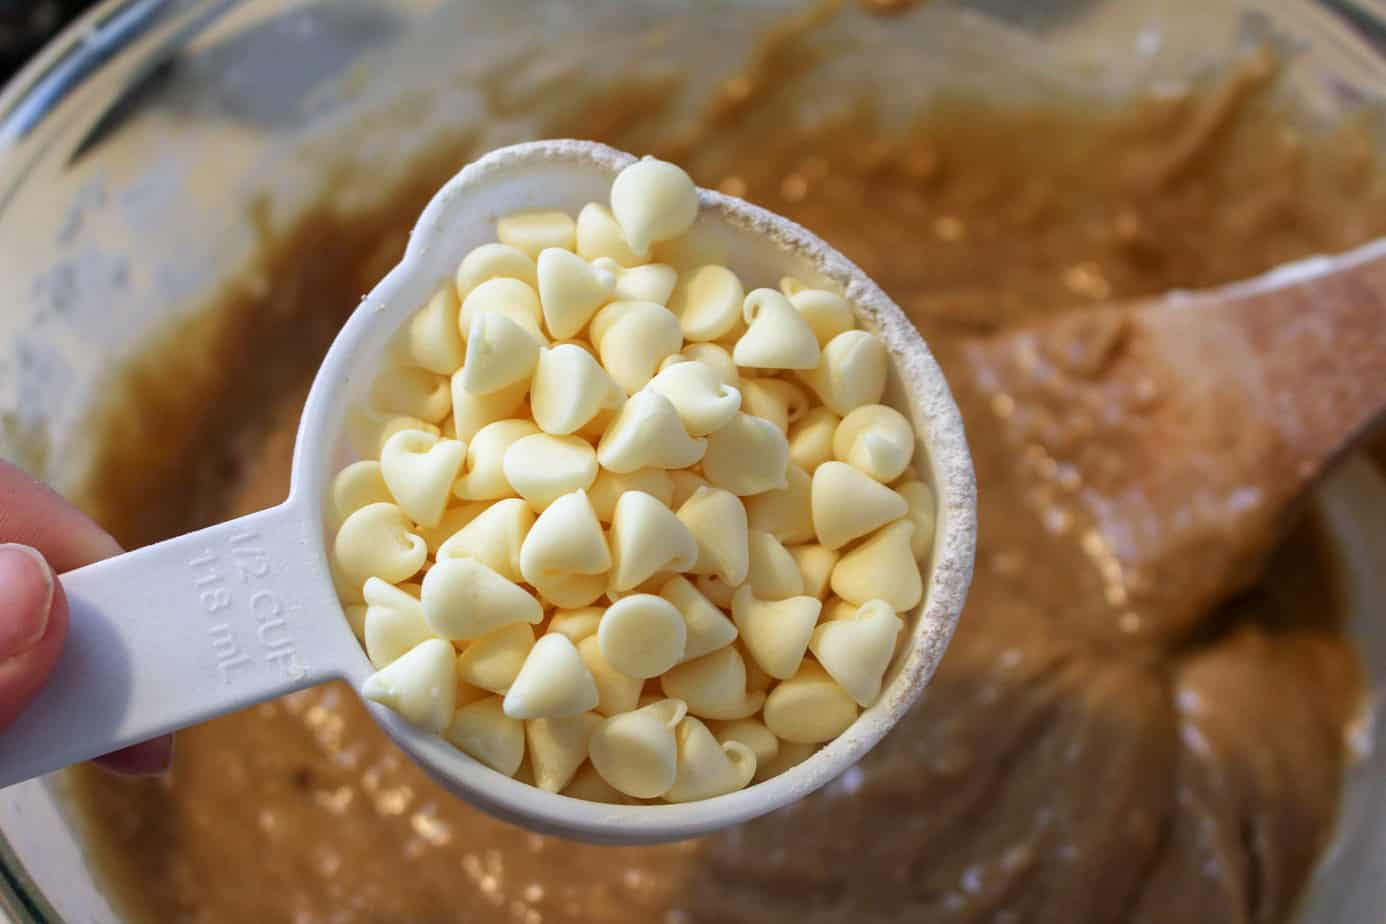 pouring in the white chocolate chips